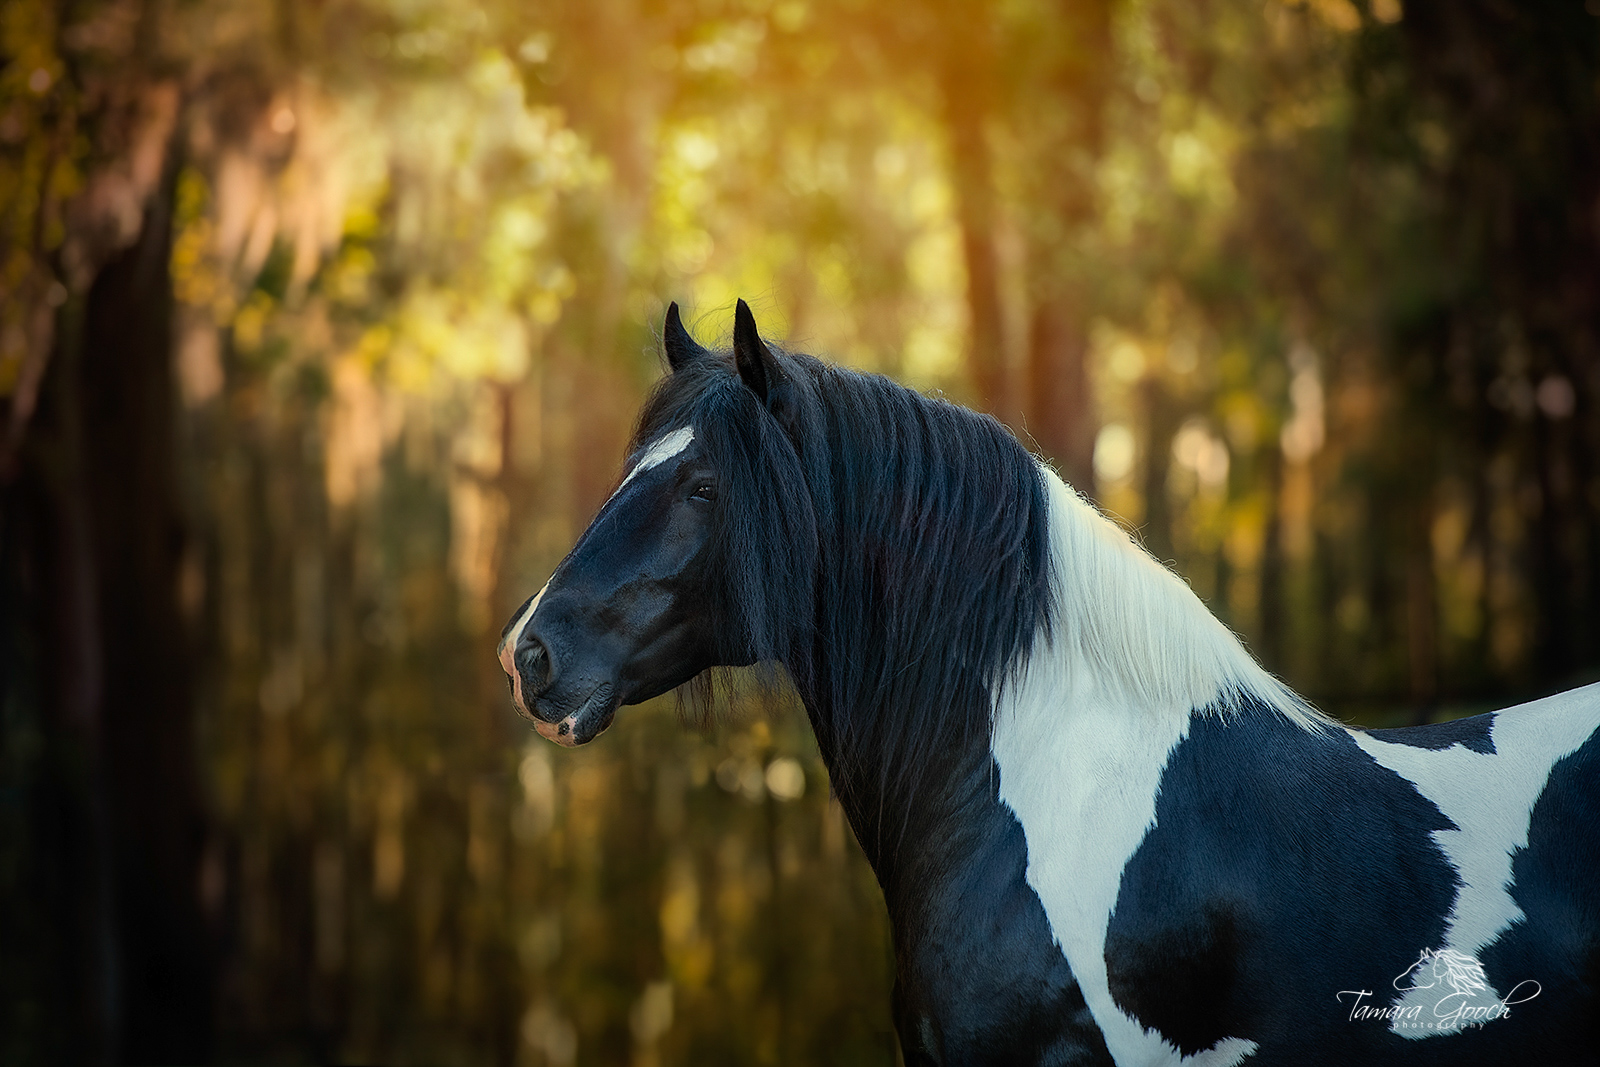 A gypsy vanner stallion photographed in Florida with beautiful light shining through the trees.